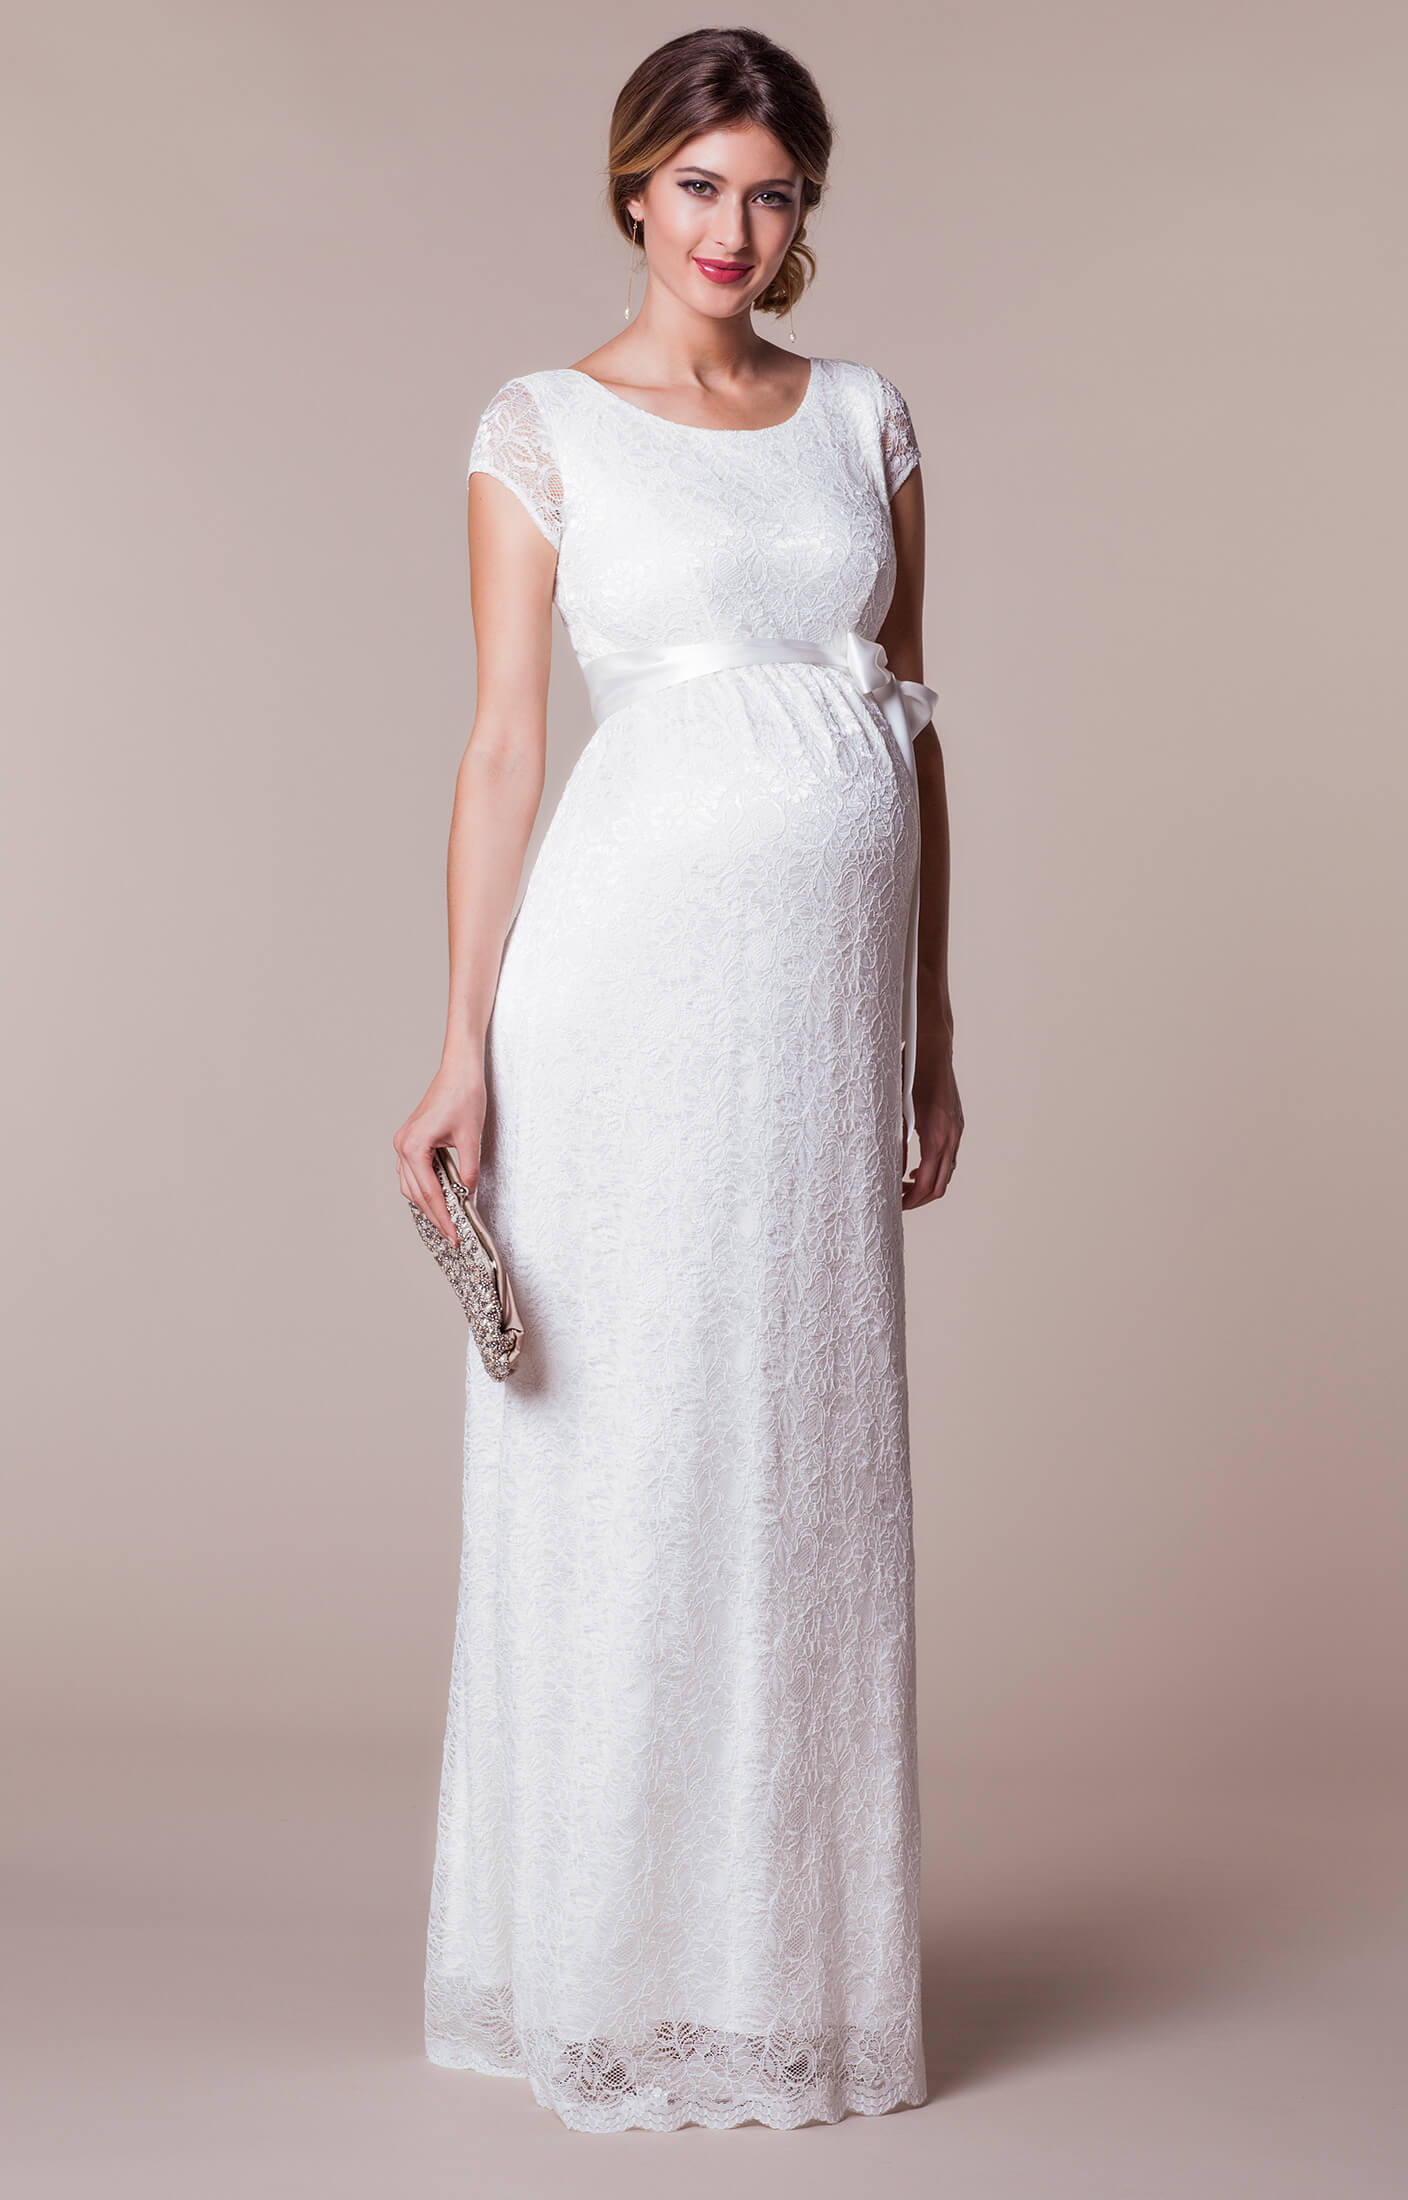 Emma maternity wedding gown long ivory maternity wedding for Pregnancy dress for wedding